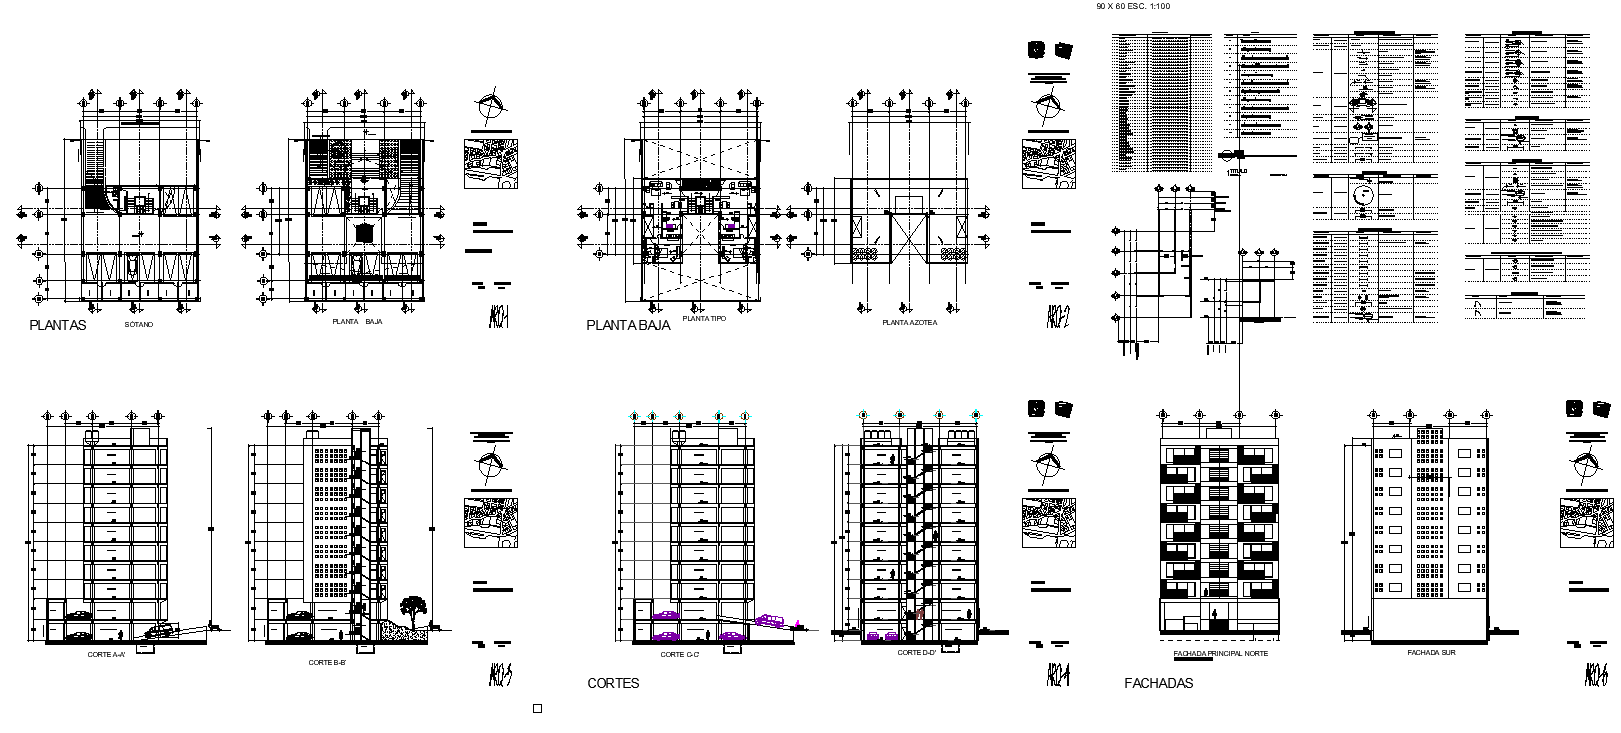 Apartments building design concrete structure layout plan and section dwg file